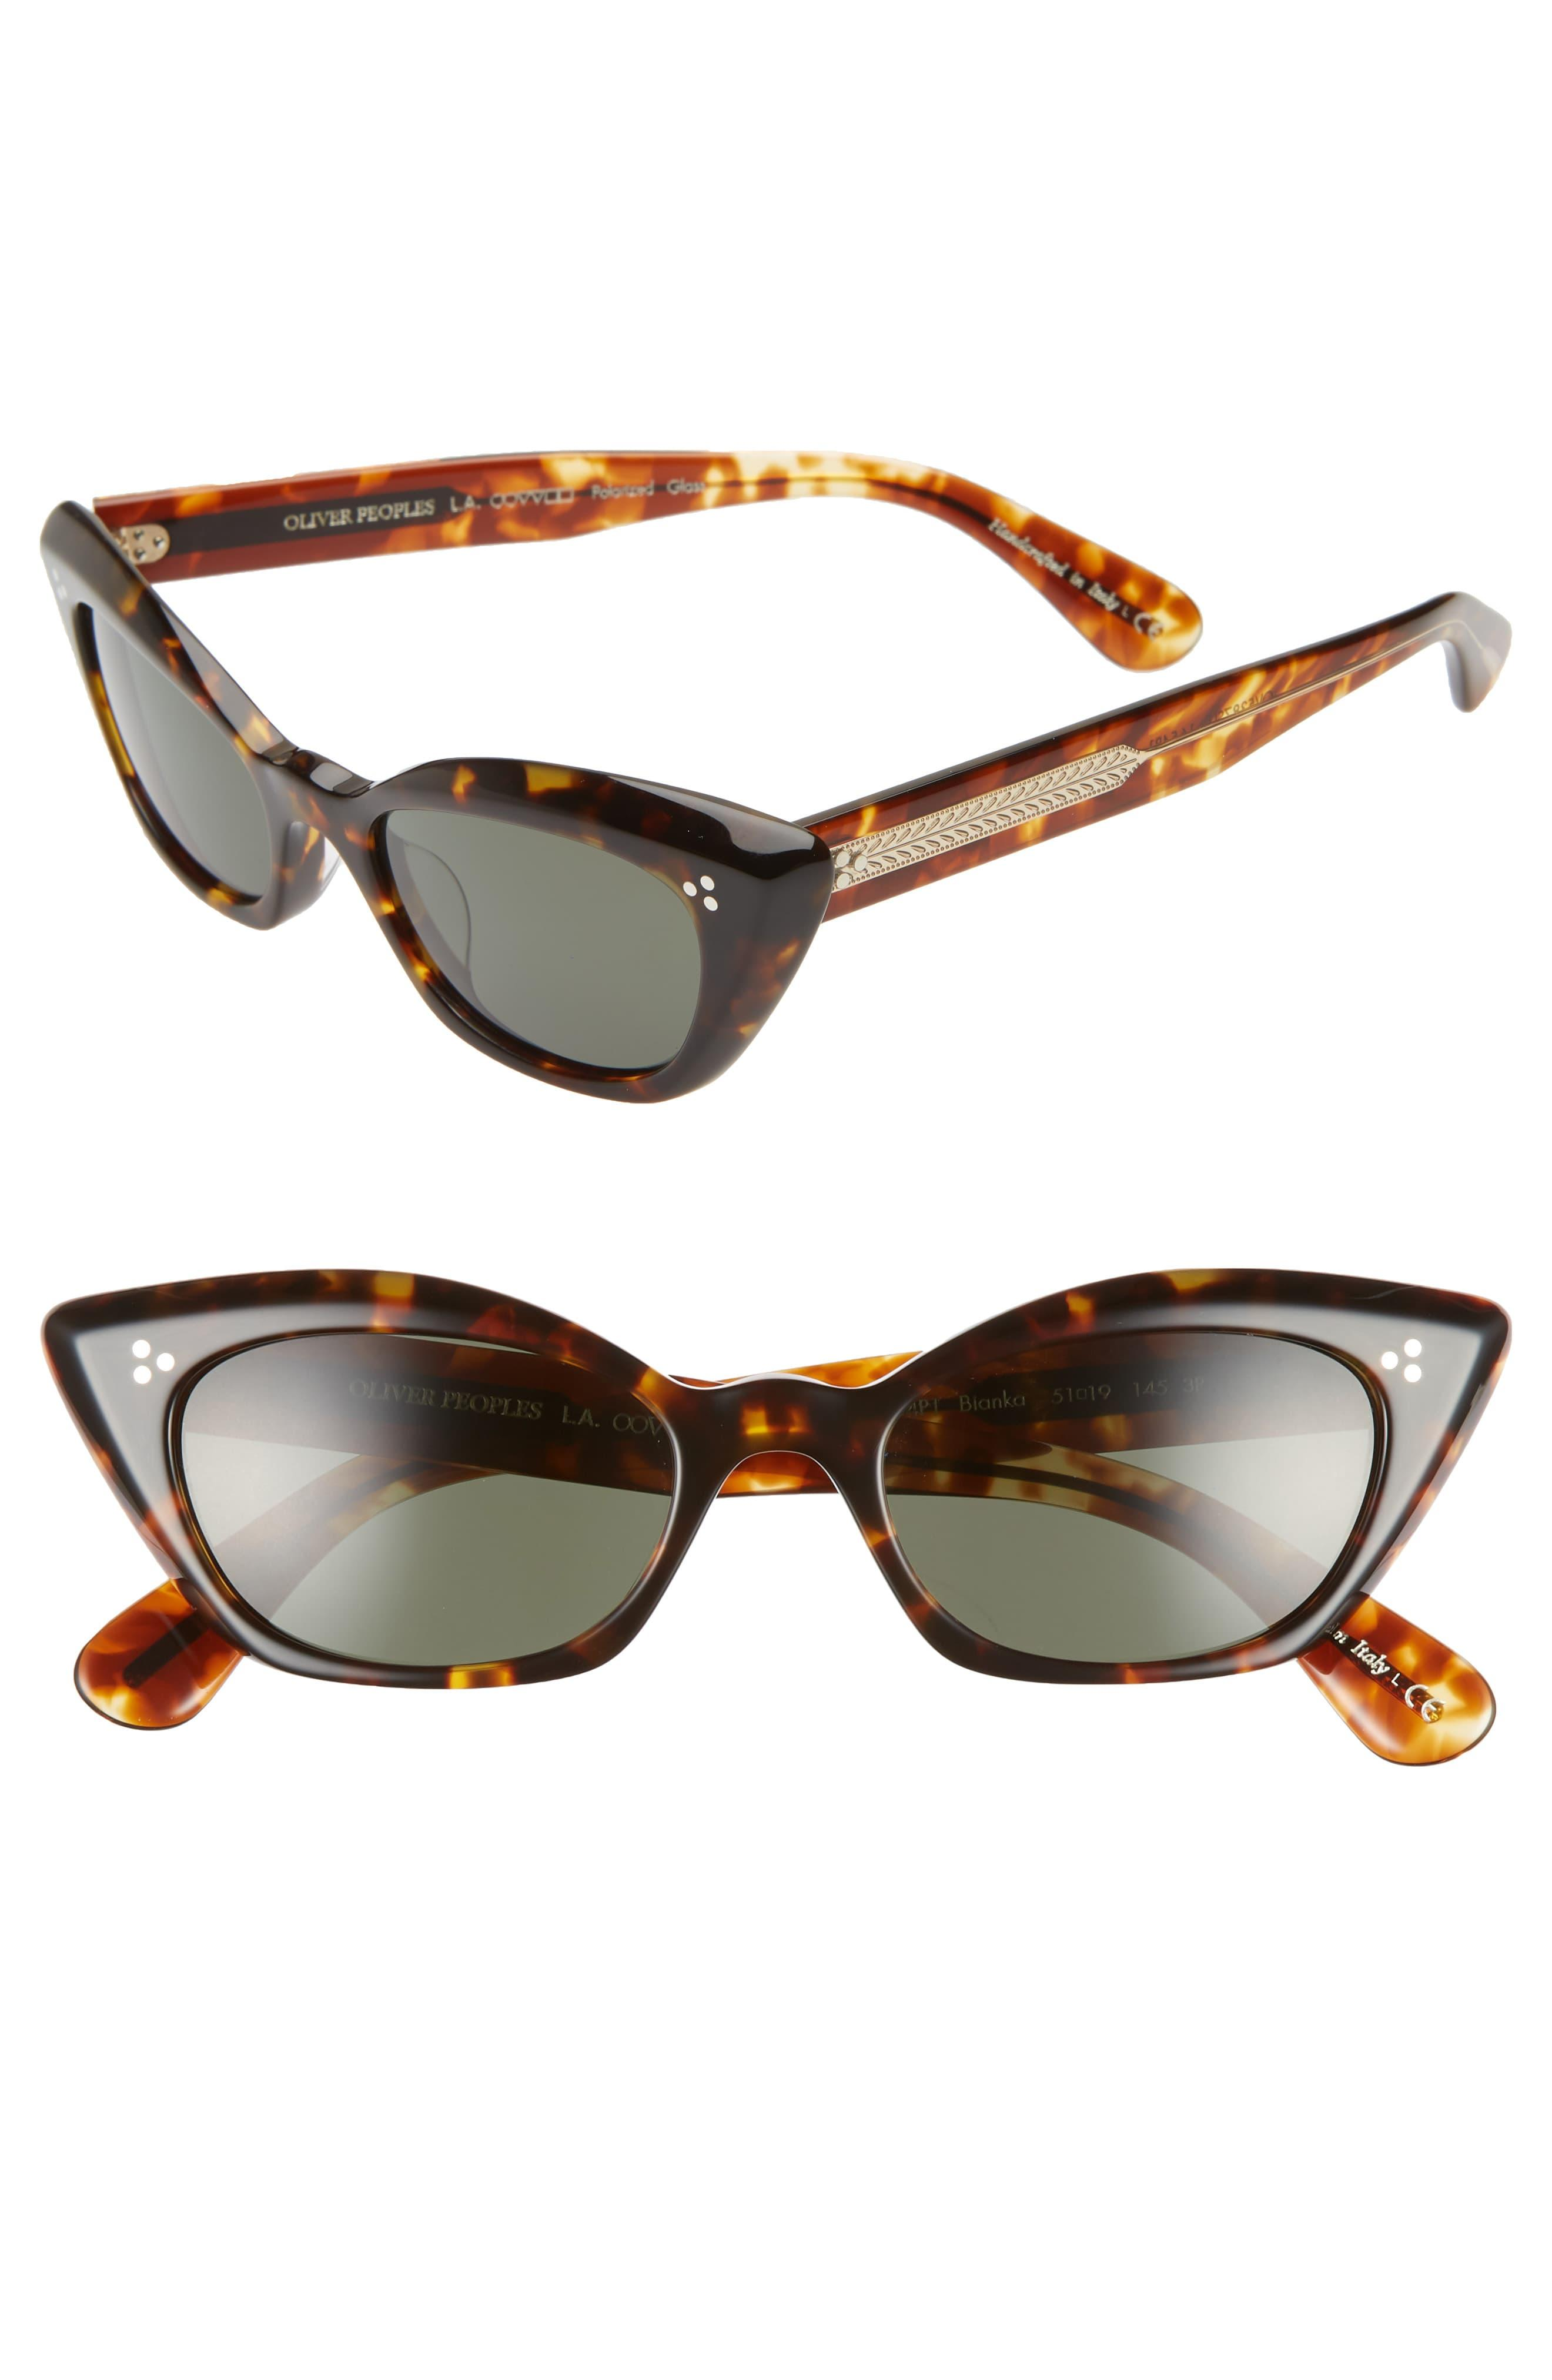 77914310c7c3 Oliver Peoples Bianka 51mm Polarized Cat Eye Sunglasses - in Brown ...